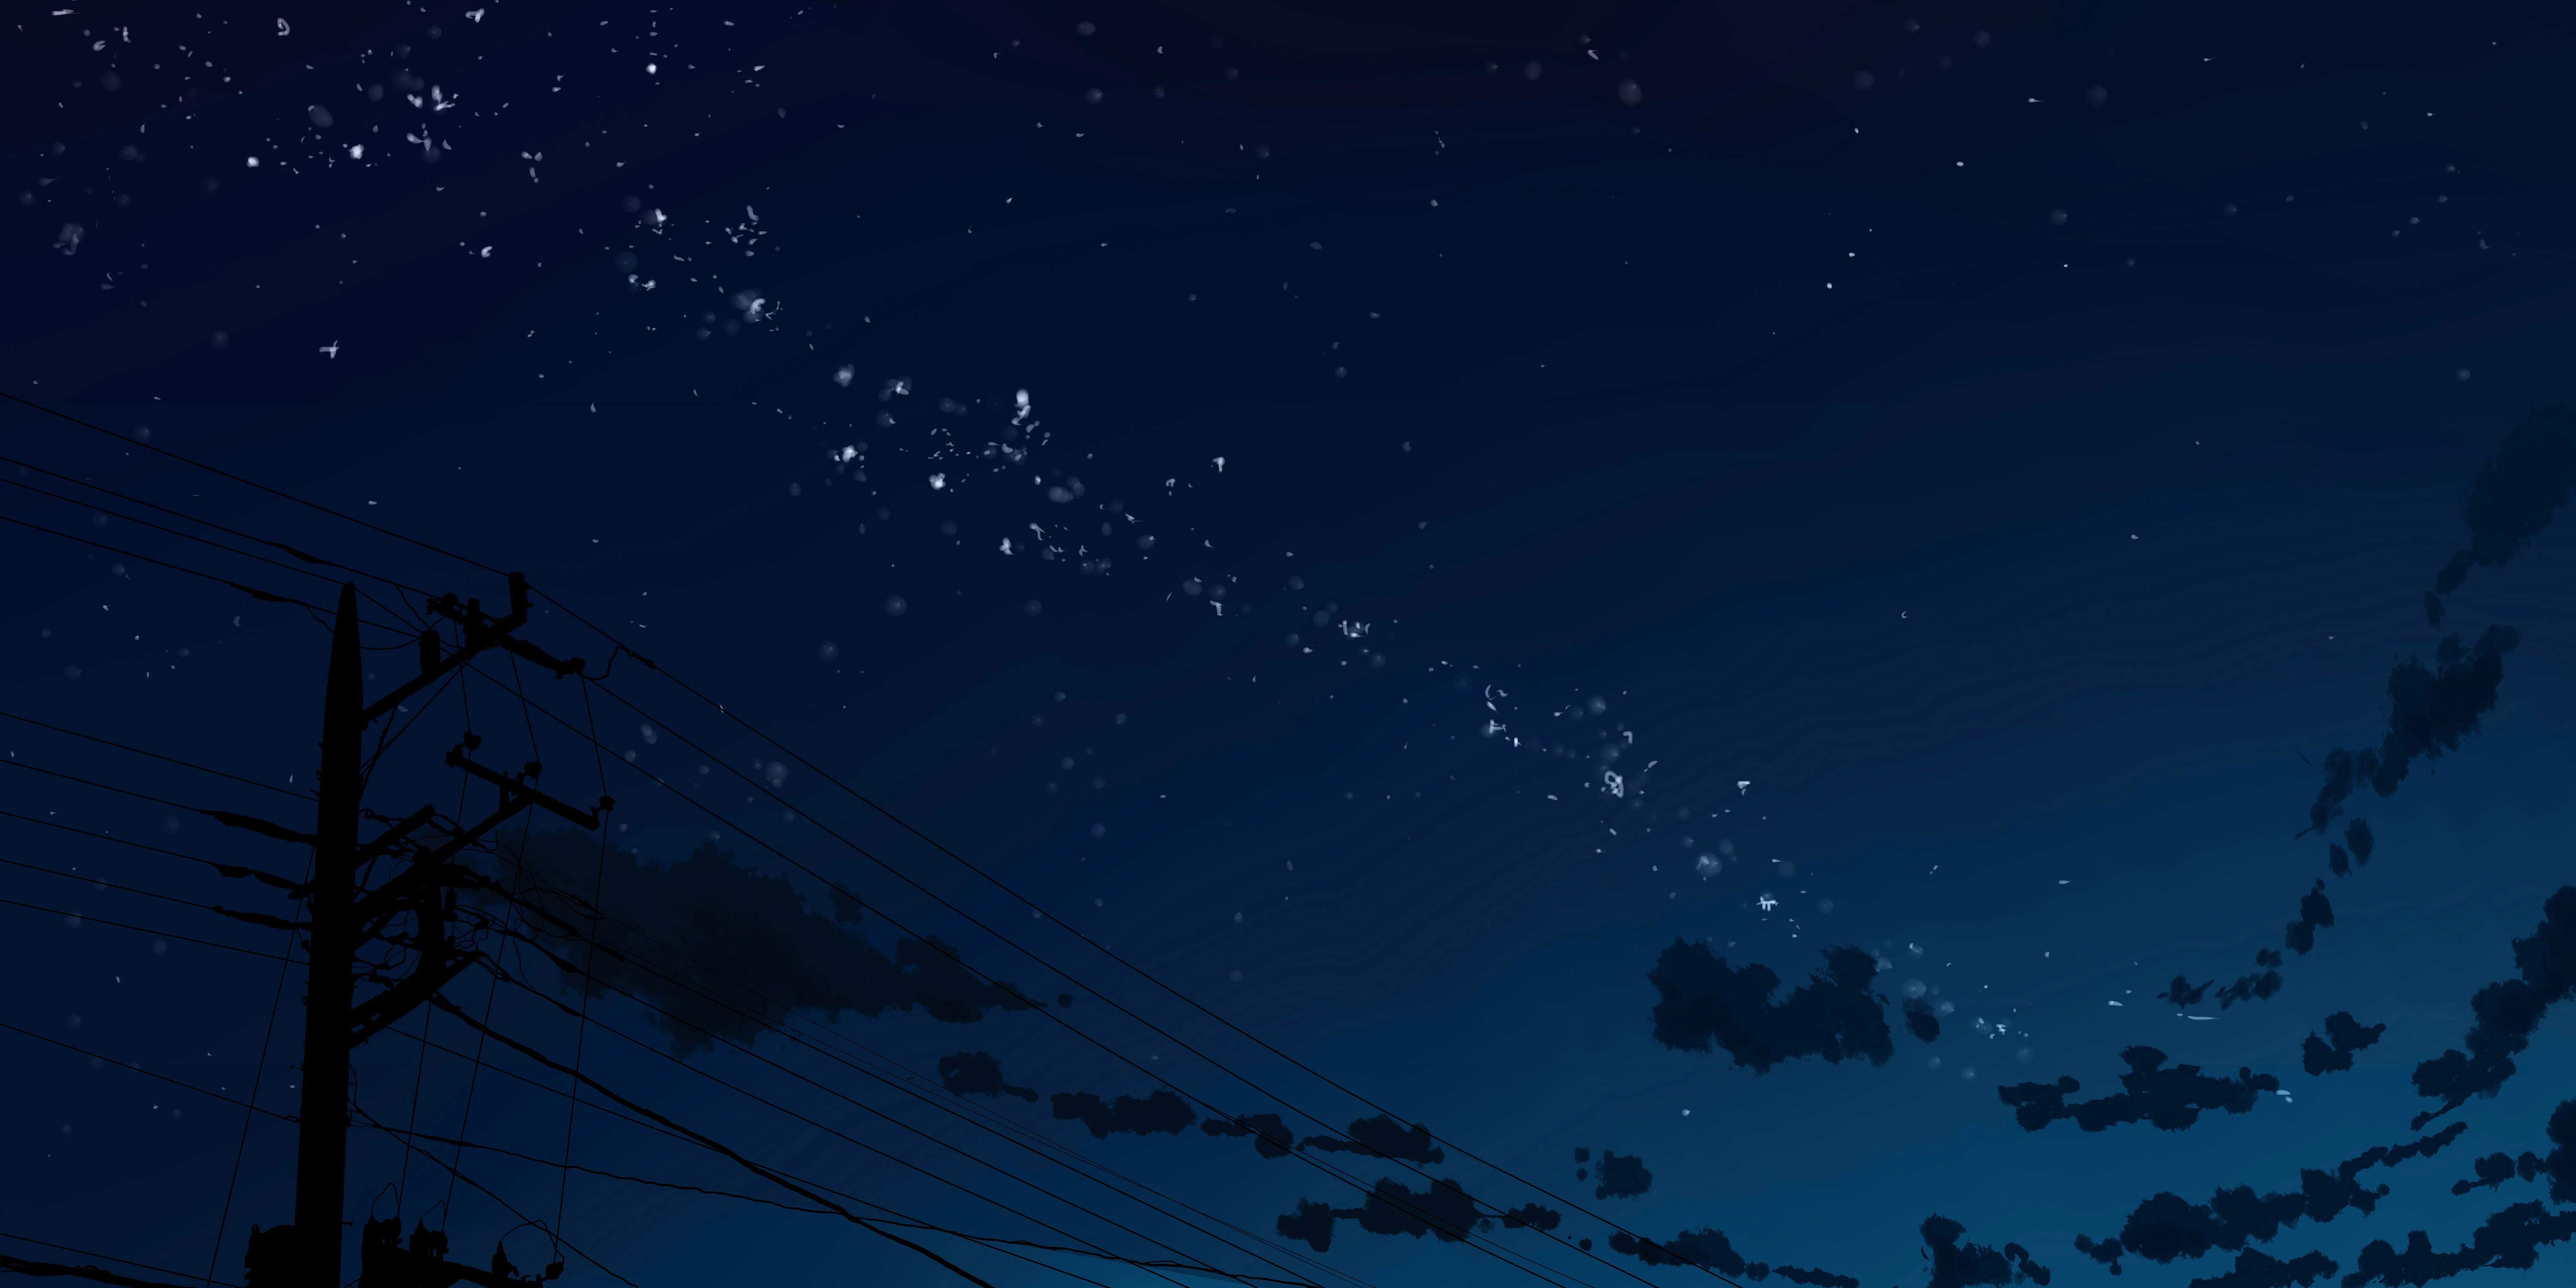 Anime Night Sky Wallpaper Posted By Sarah Sellers